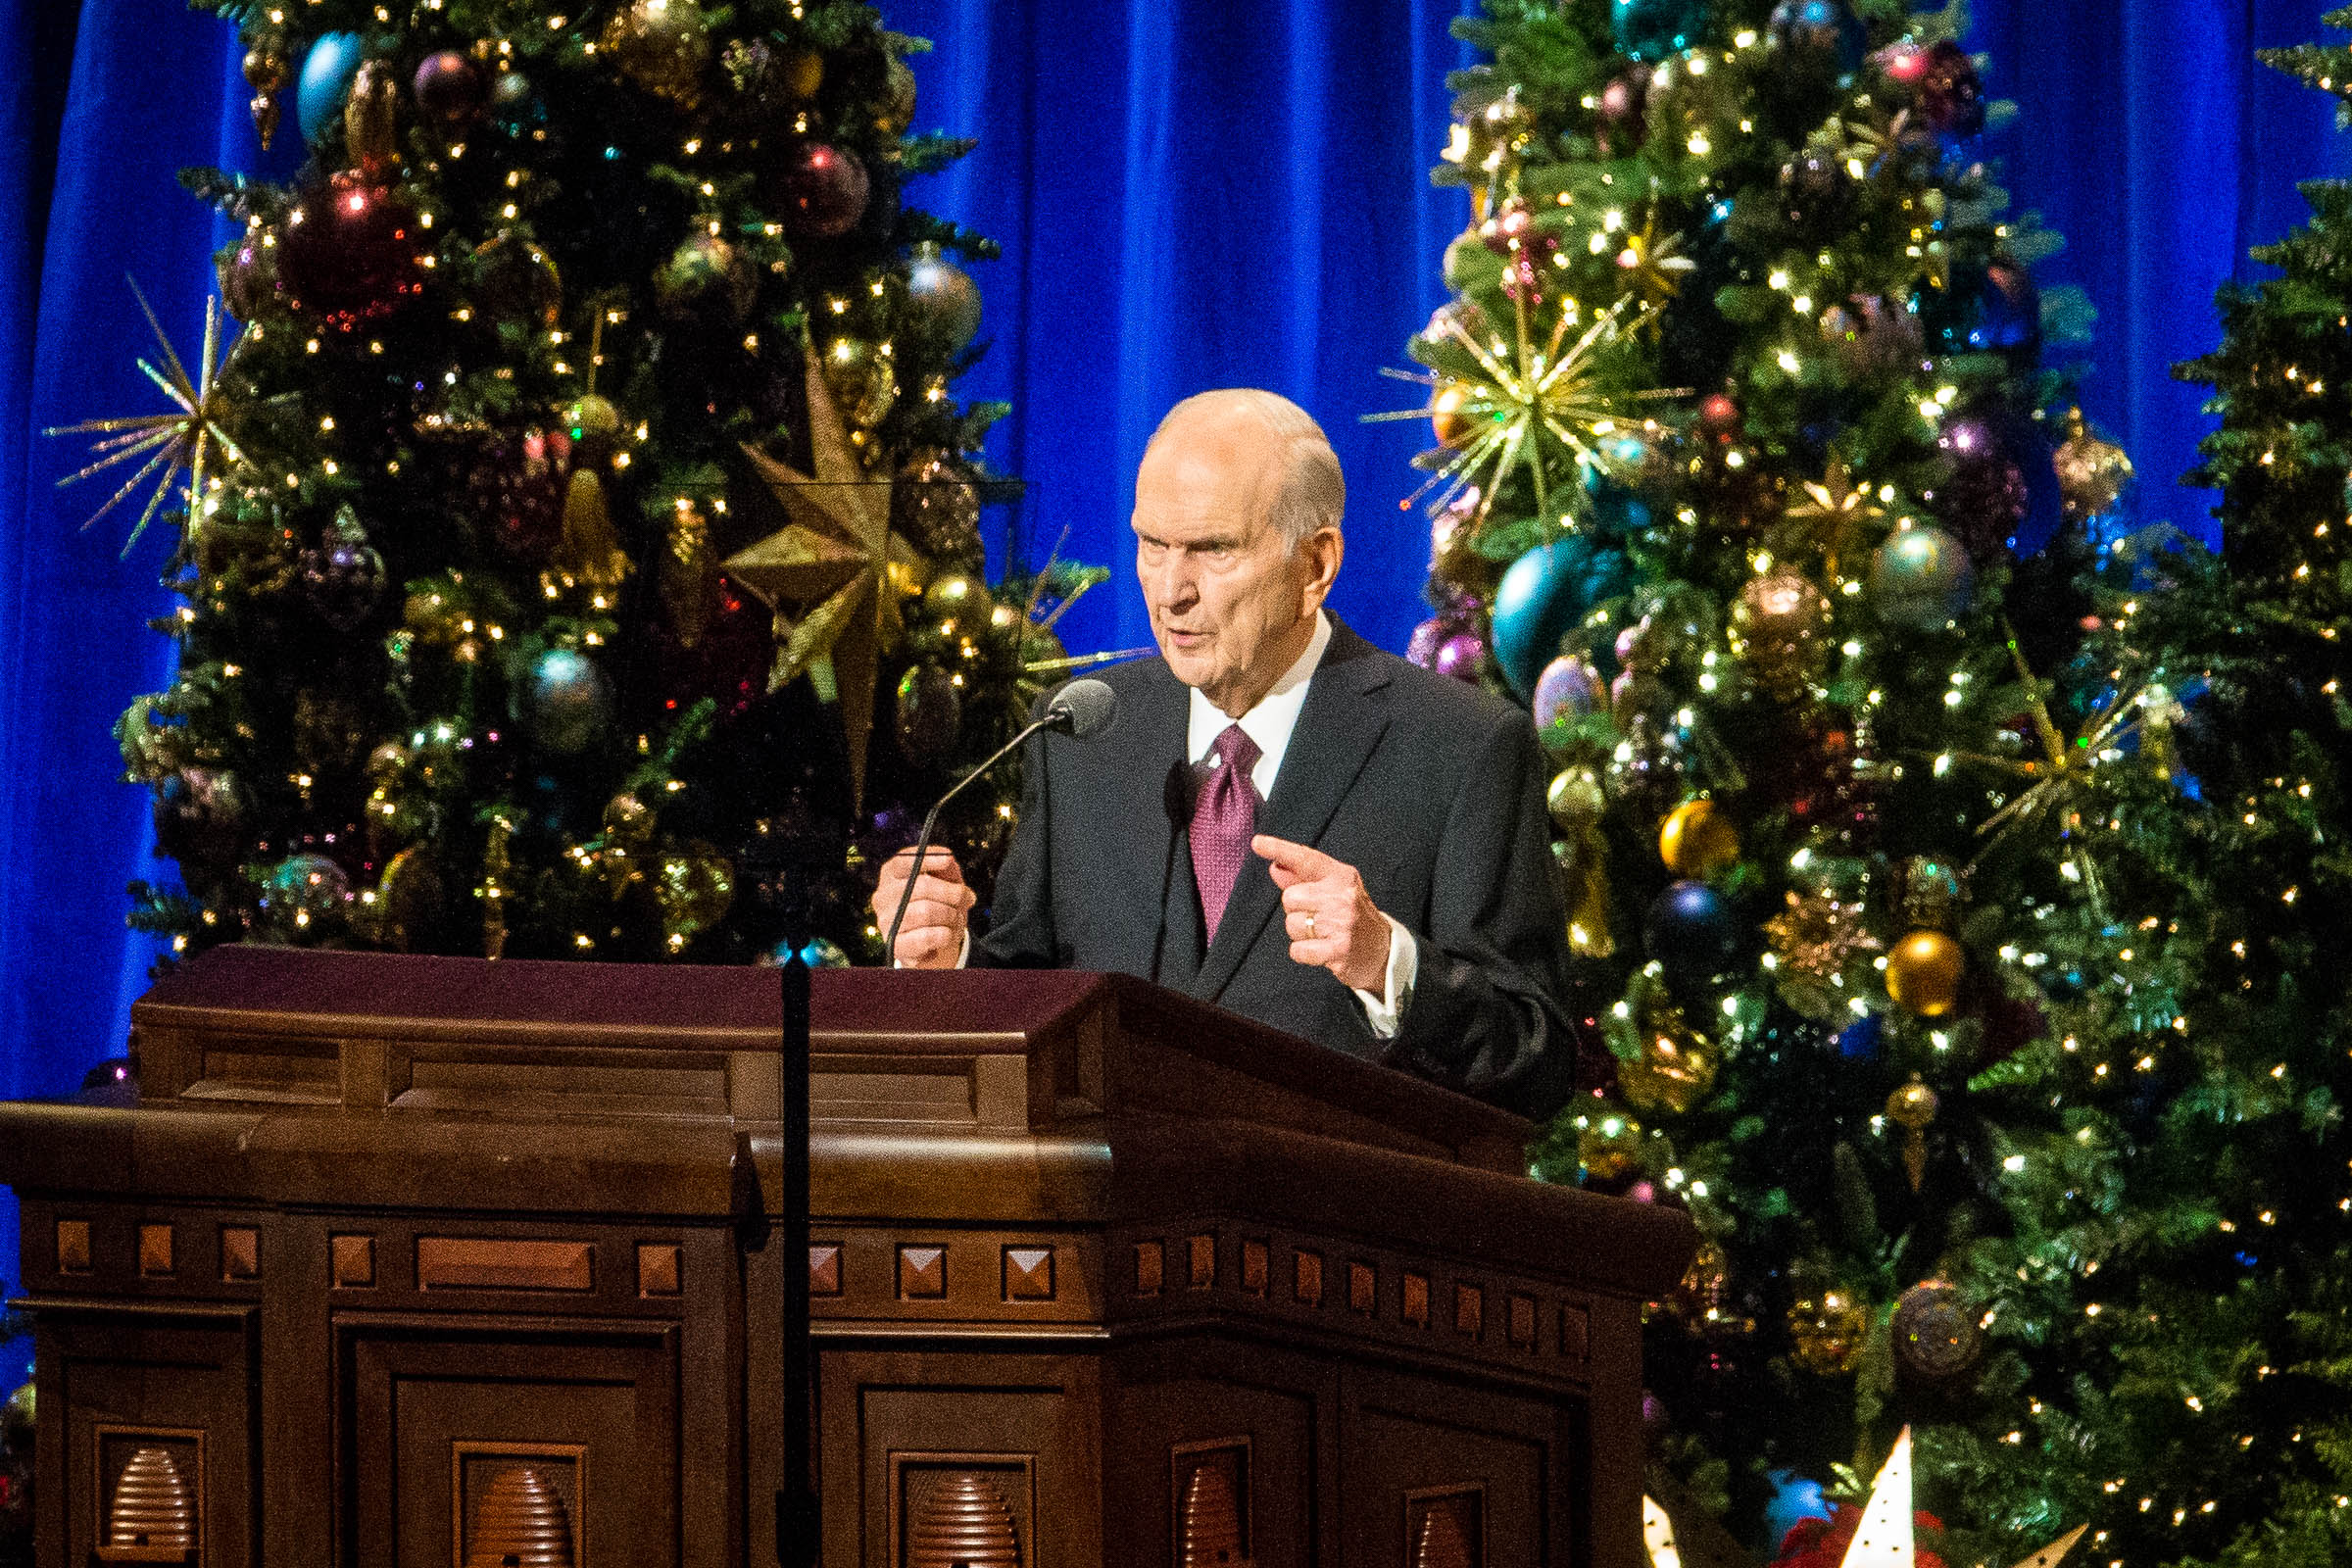 Jesus Christmas Pic.At Christmas Devotional President Nelson Addresses 4 Gifts